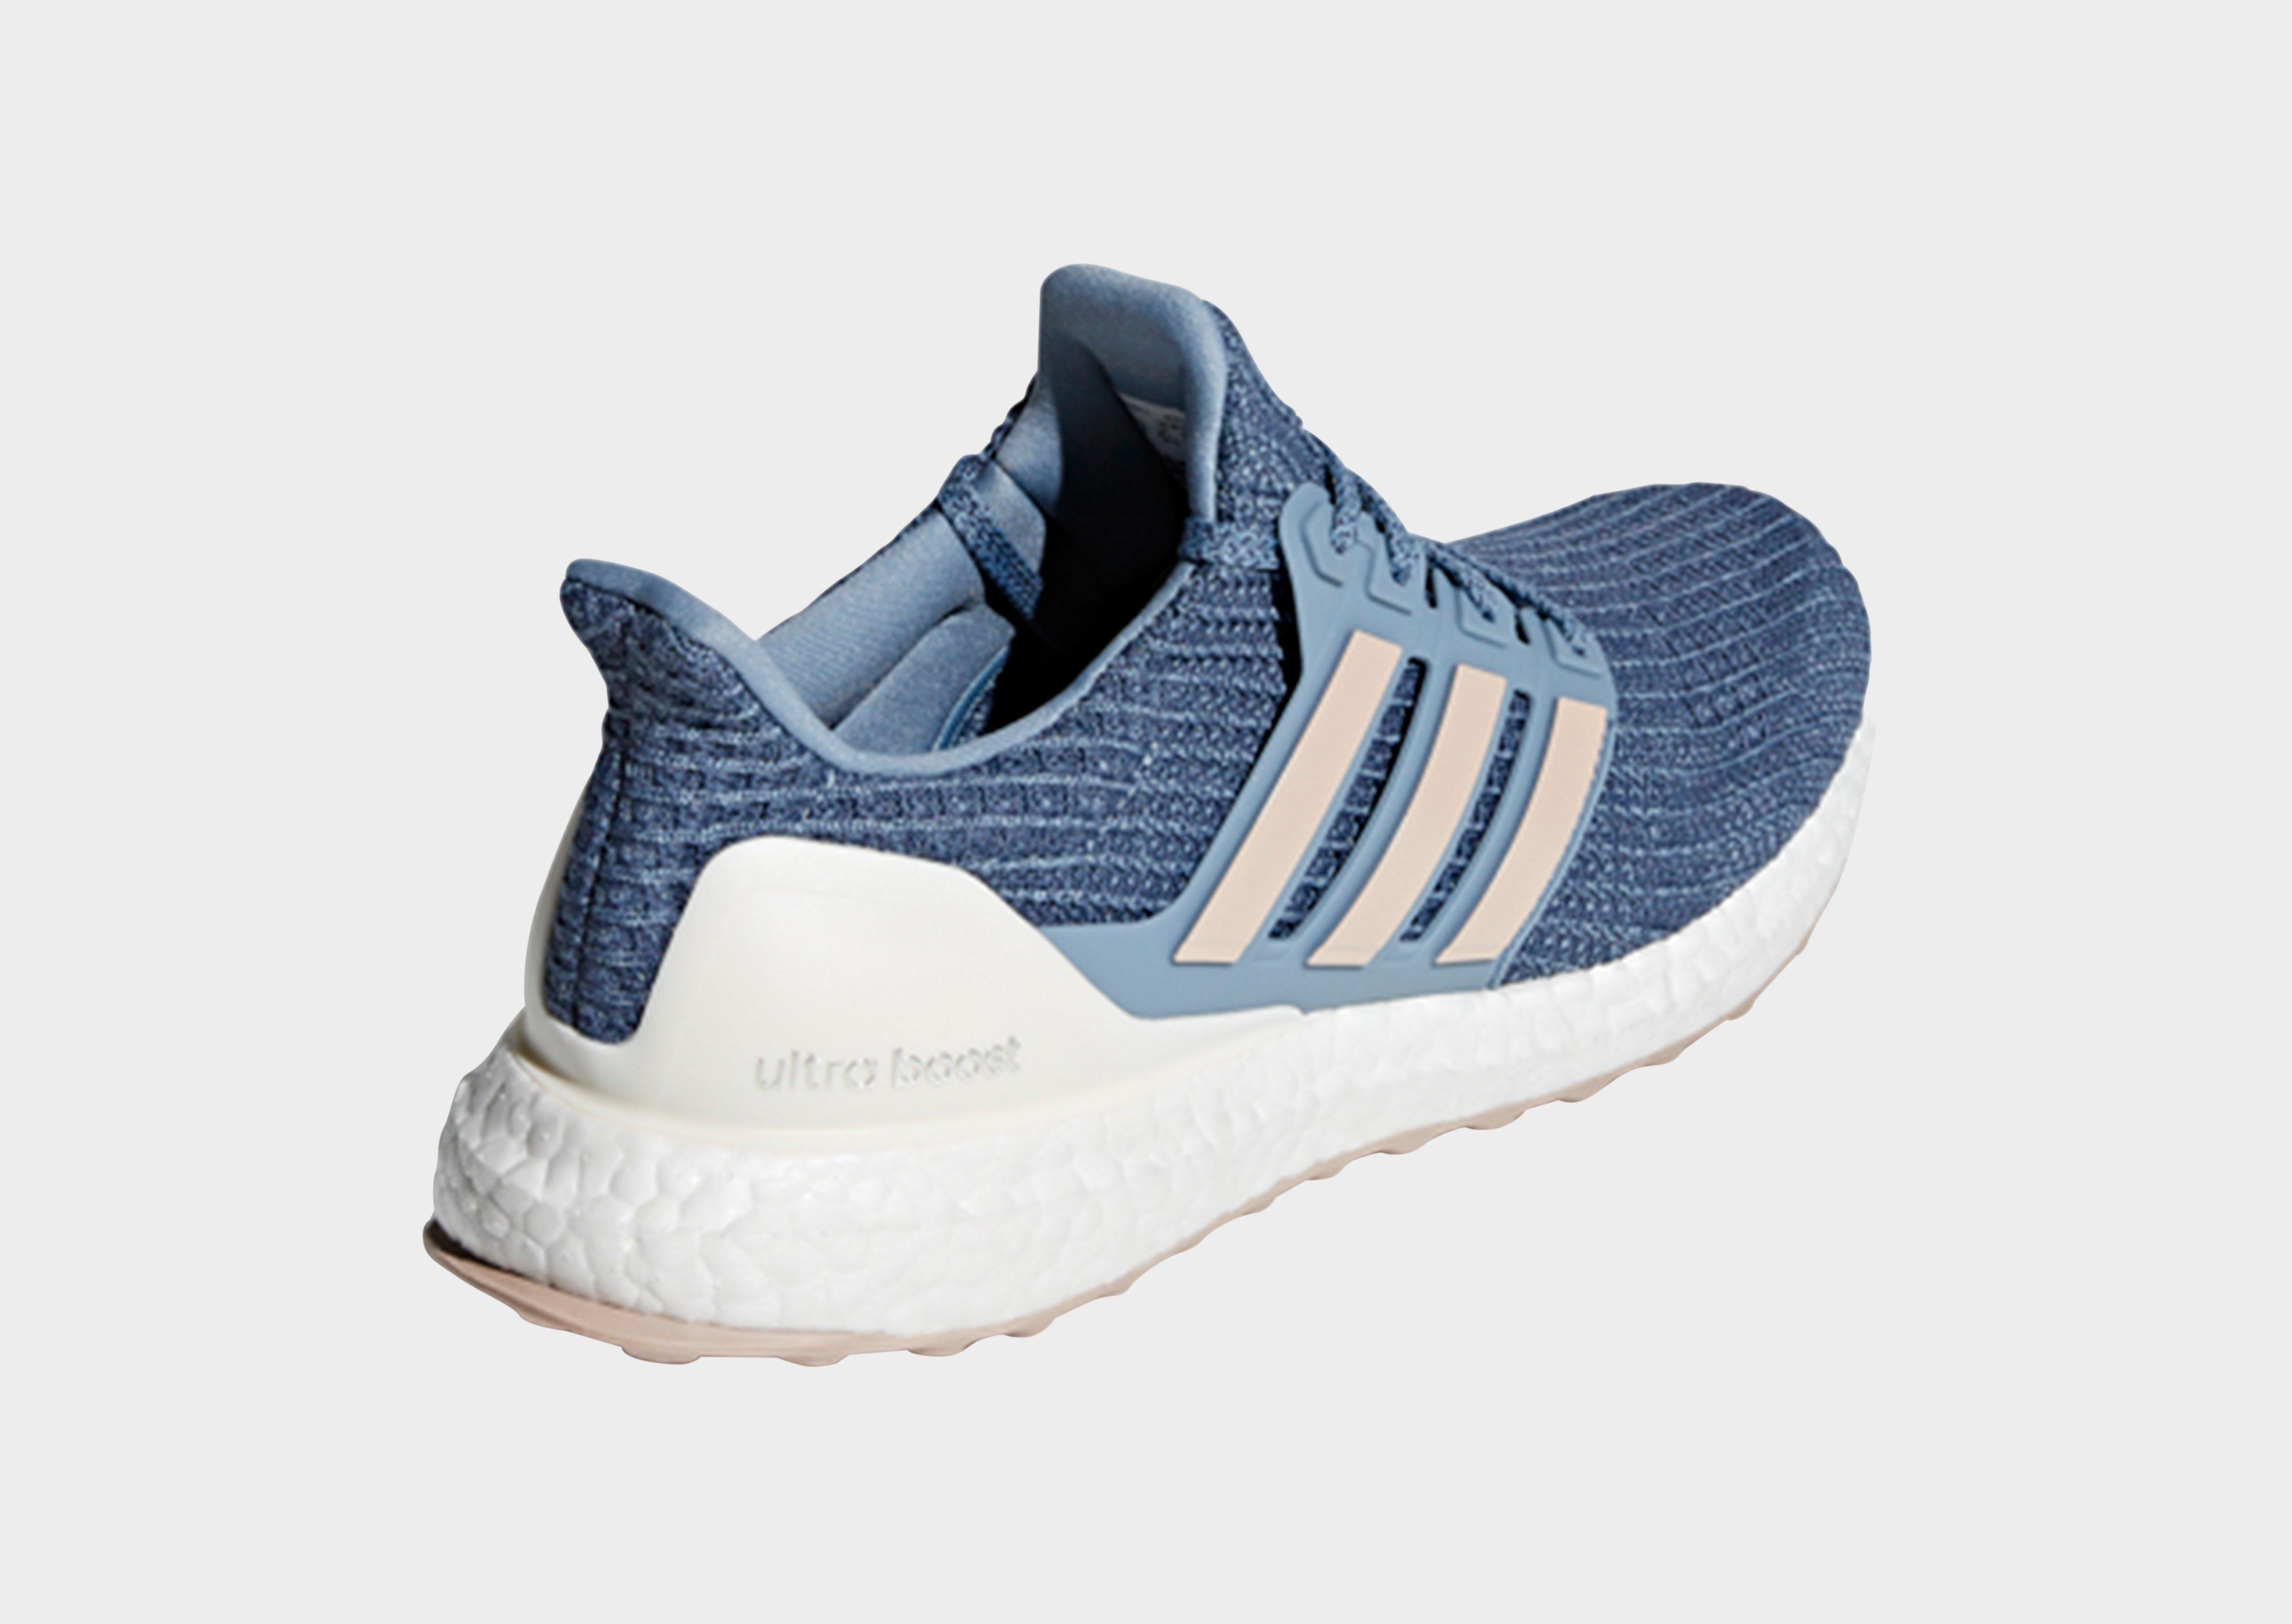 new arrival 707fe fcc34 Lyst - Adidas Ultraboost Shoes in Gray for Men